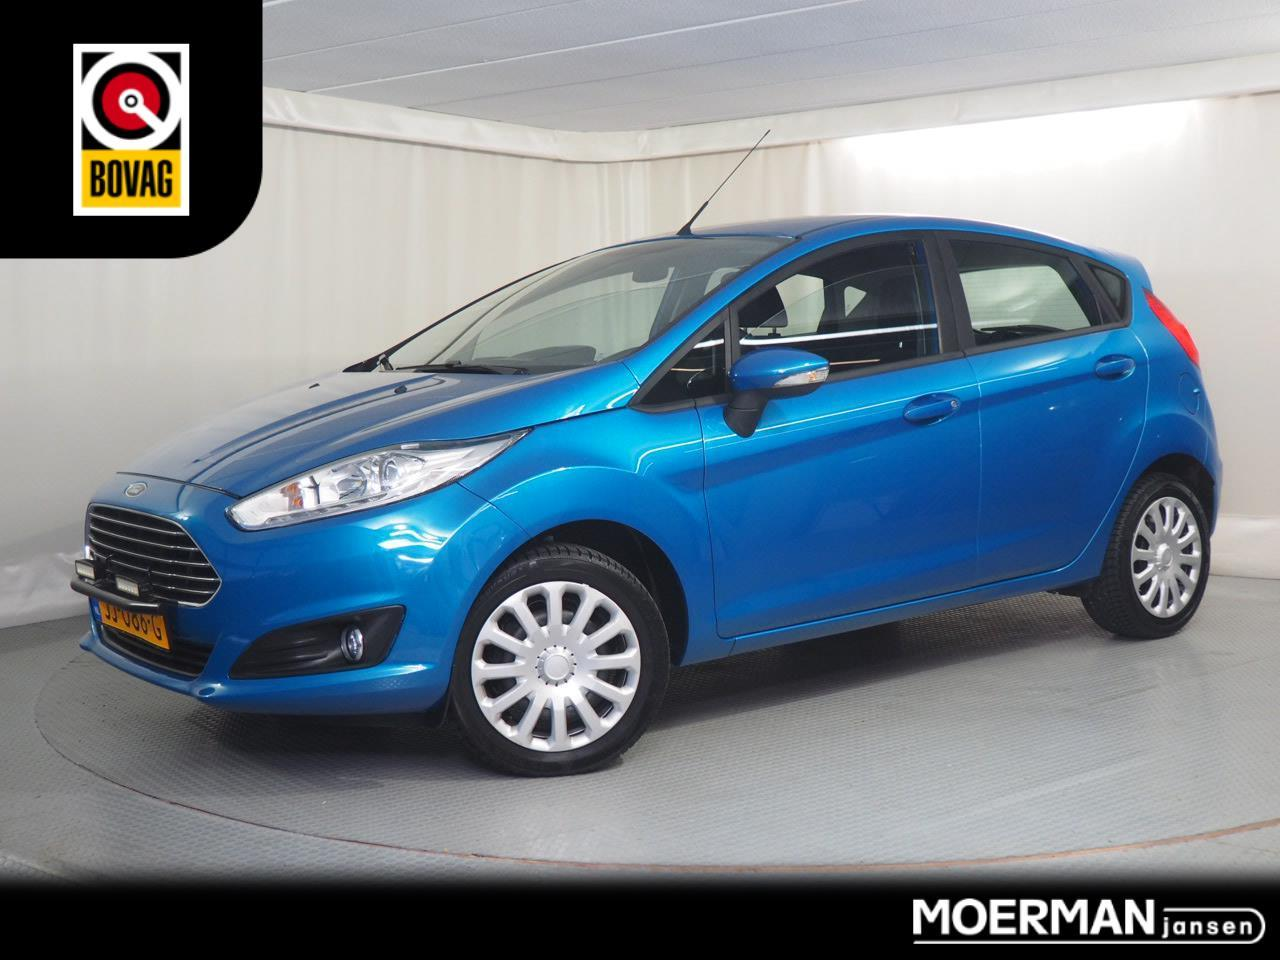 Ford Fiesta 1.0 style / 5 drs / navigatie / airco / led lampen / 54.000km